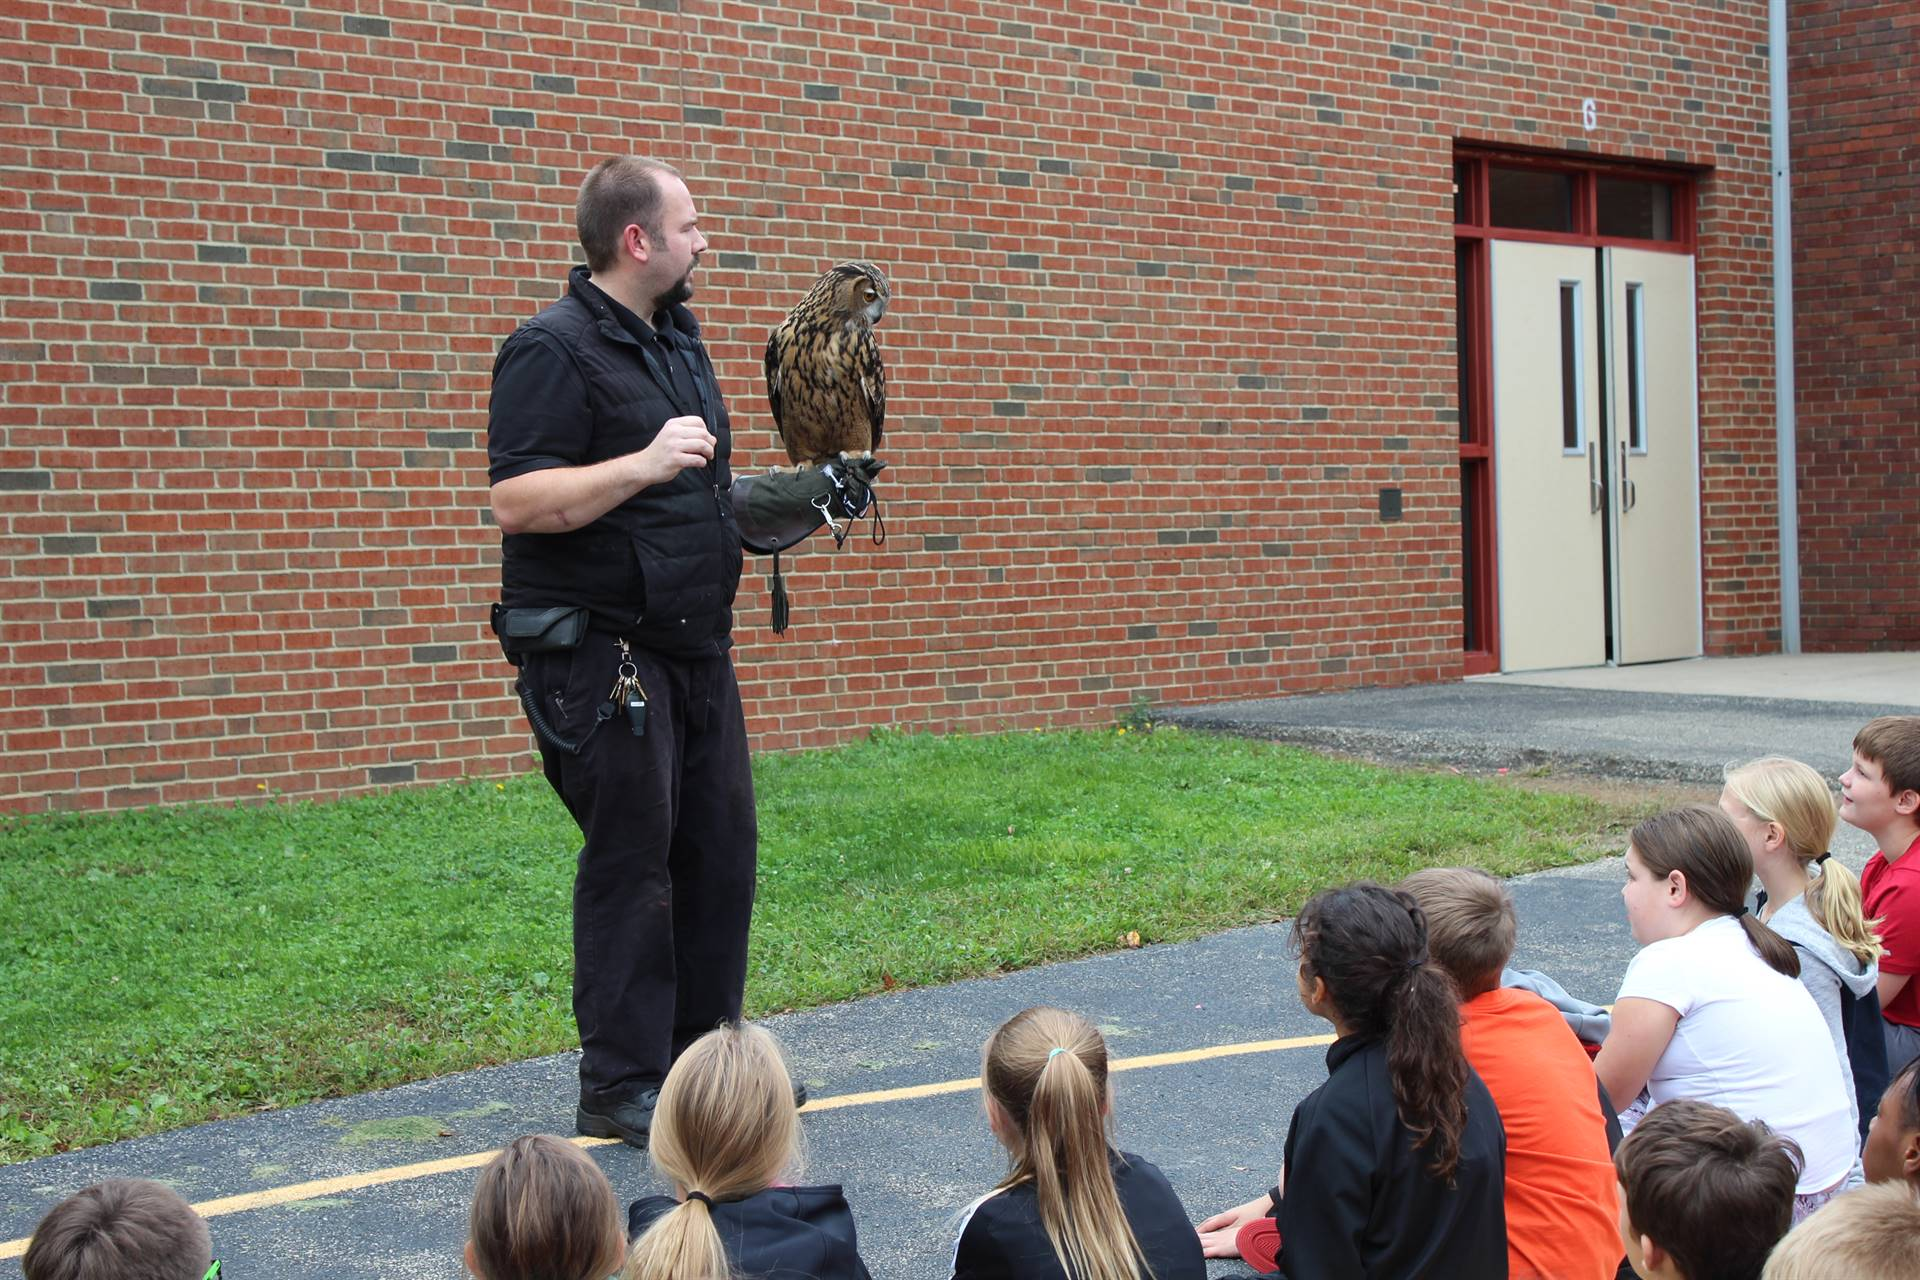 Mr. Davis talking to the students about the owl